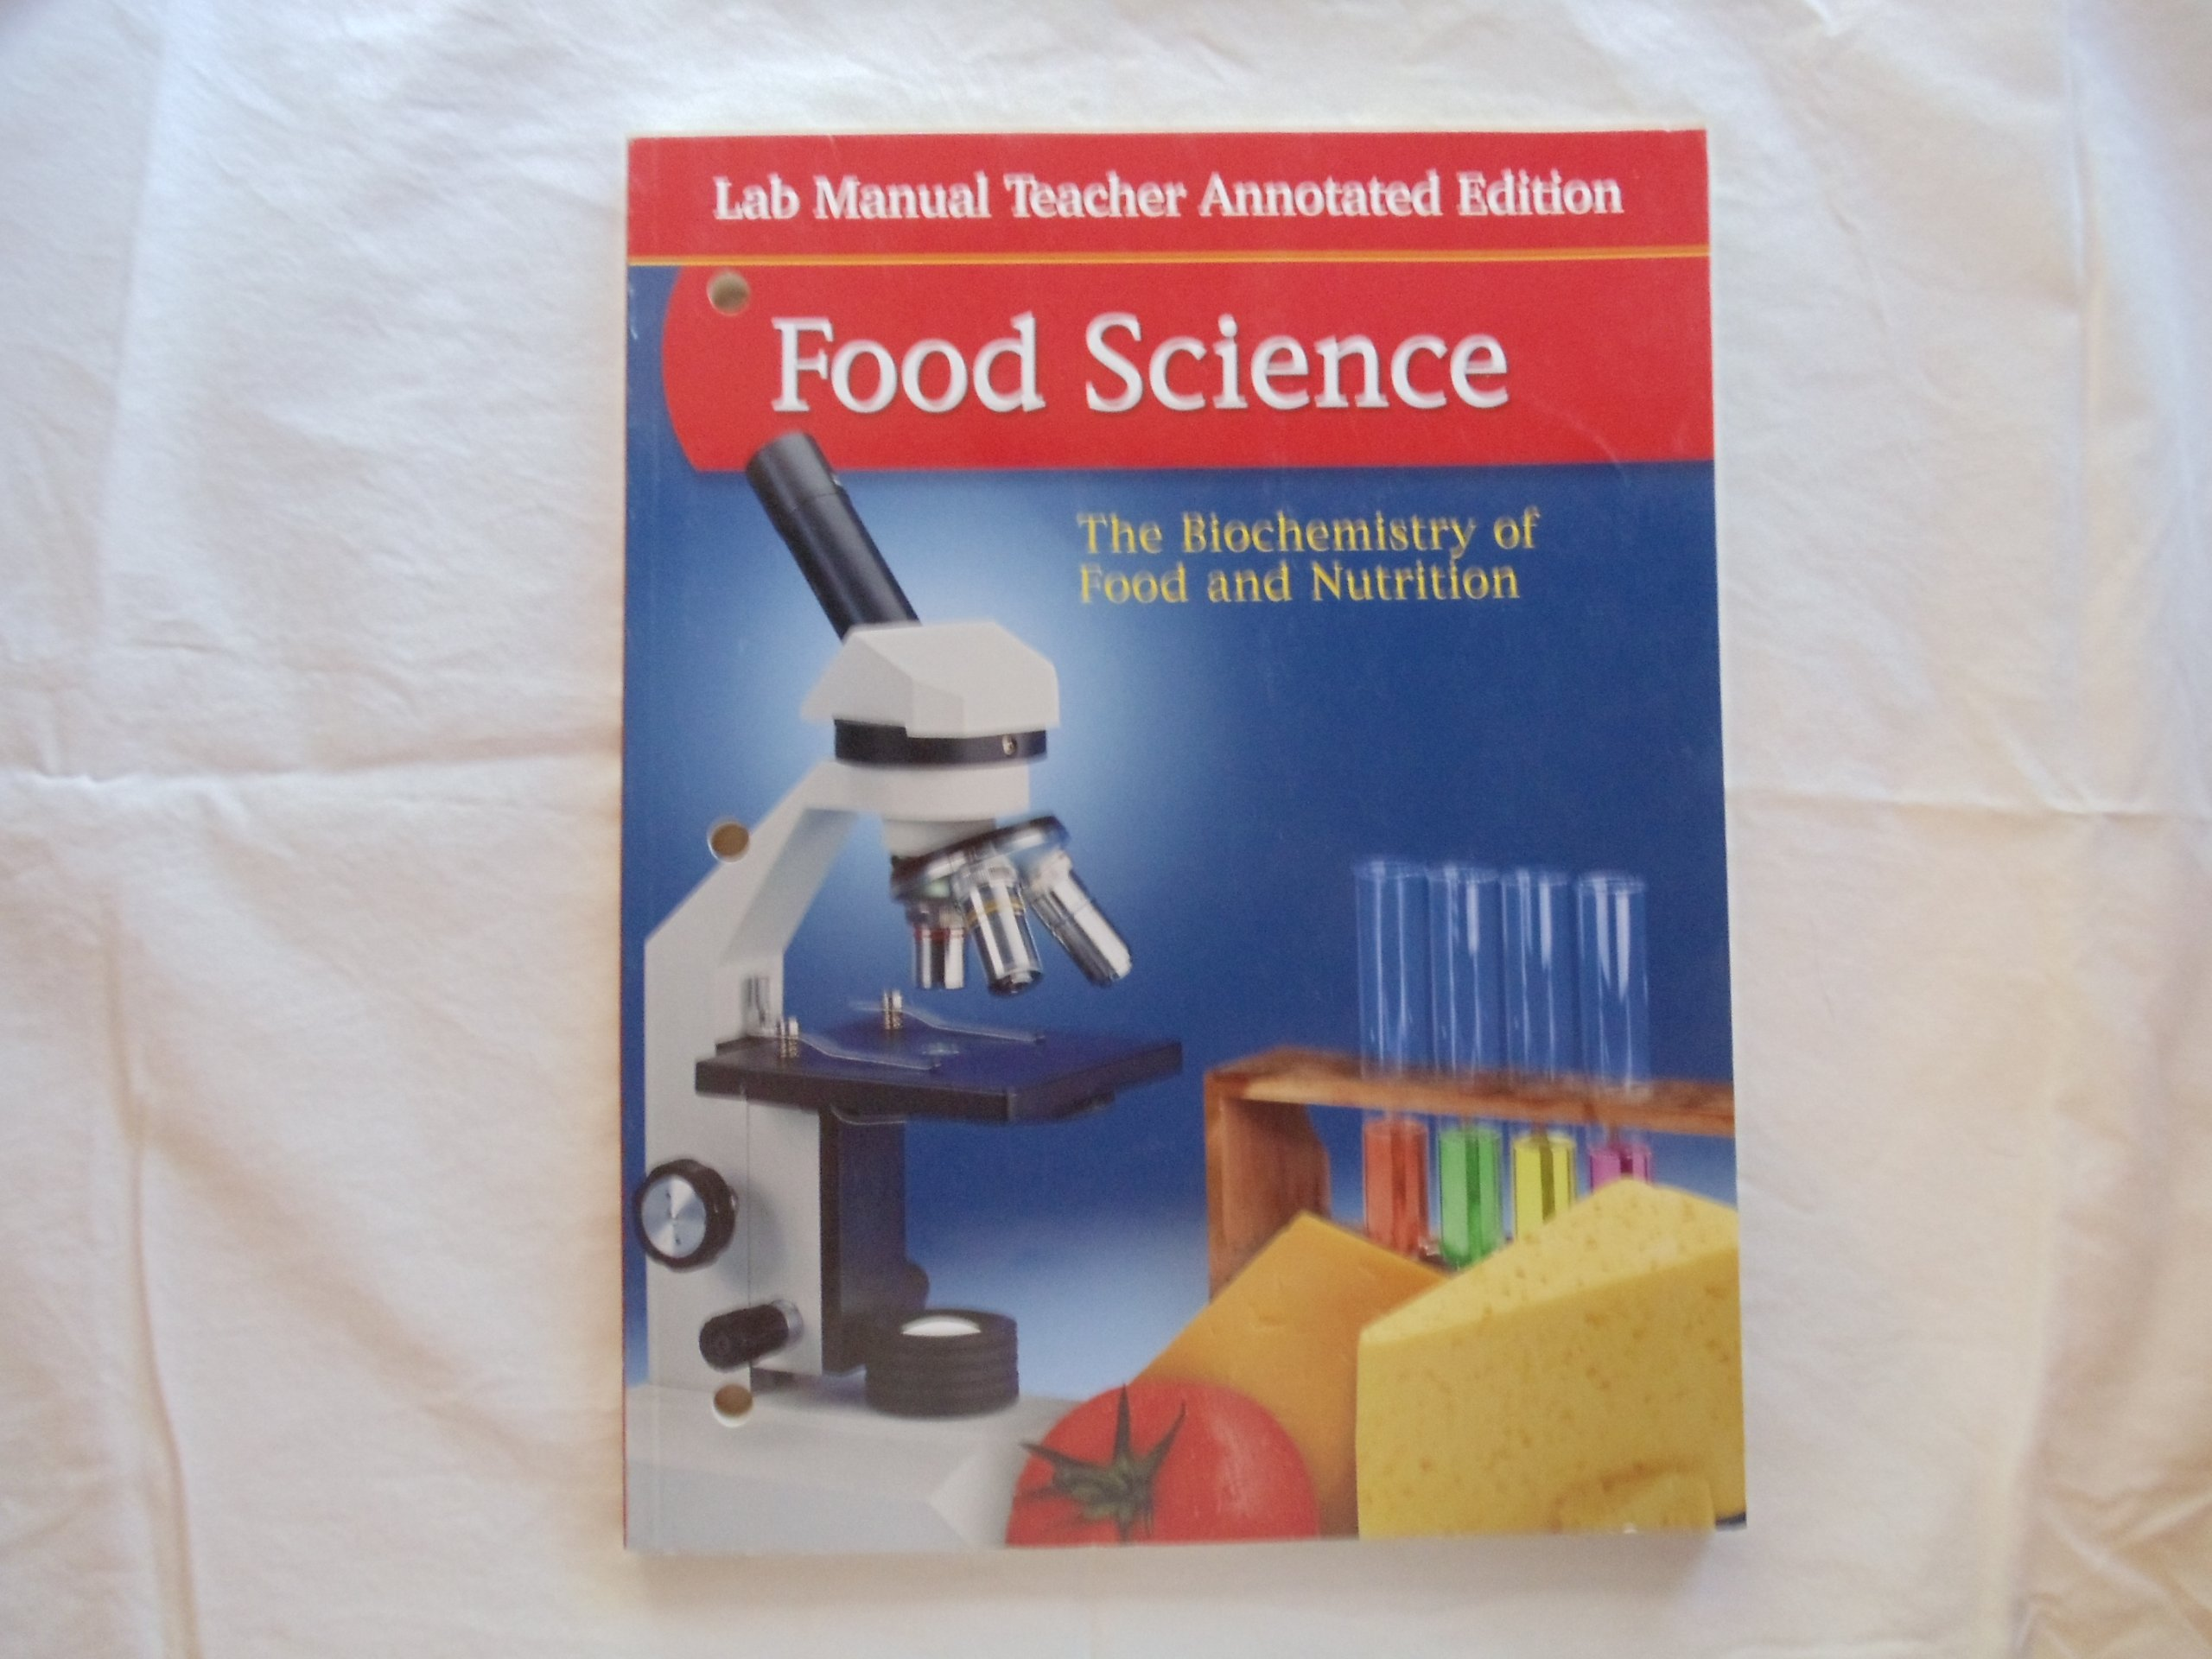 Glencoe: Food Science - Lab Manual Teacher Annotated Edition: Sharon Lesley  Rodgers Kay Yockey Mehas: 9780078690839: Amazon.com: Books